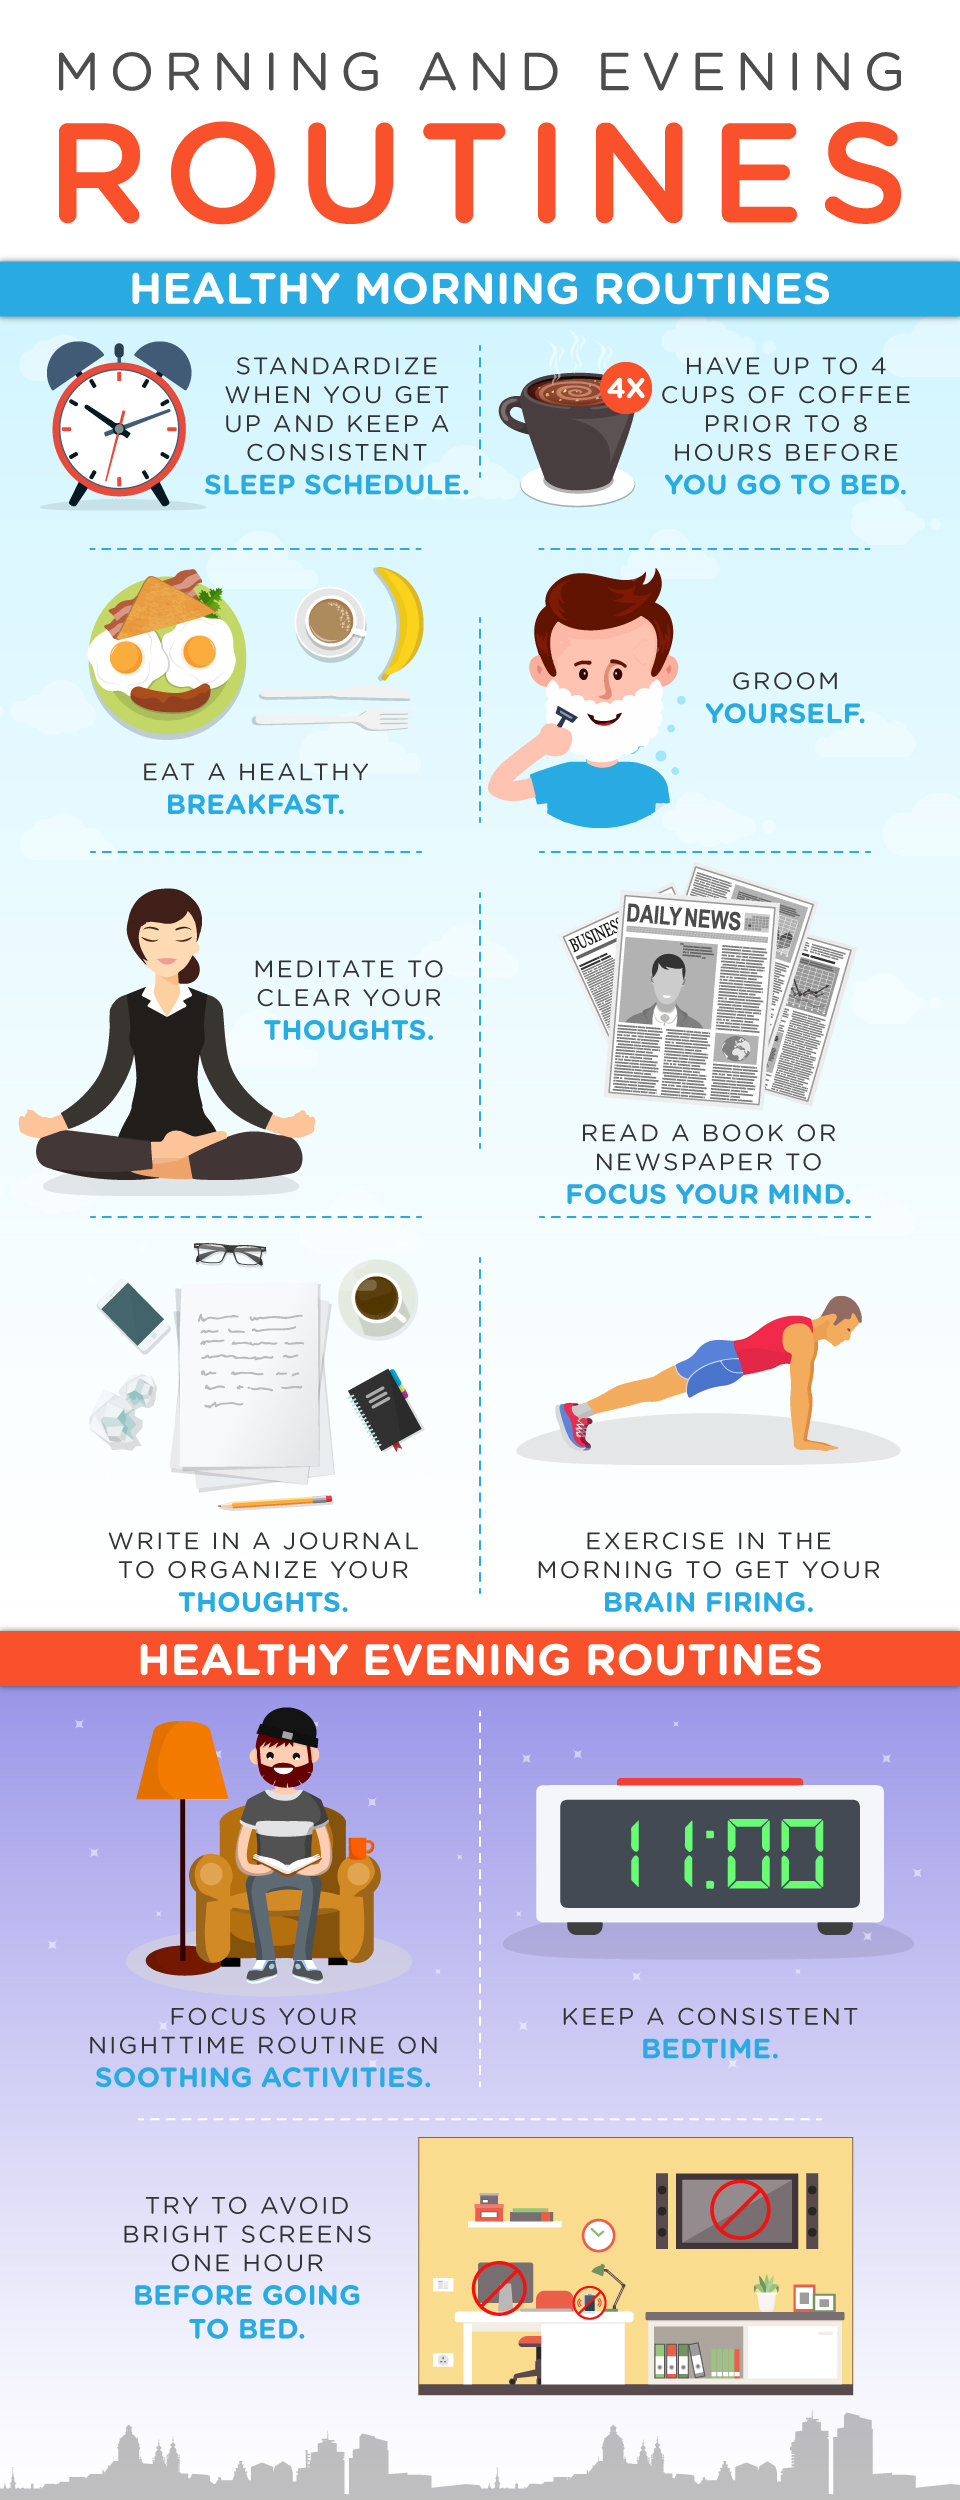 Morning and Evening Routines Infographic - work life balance